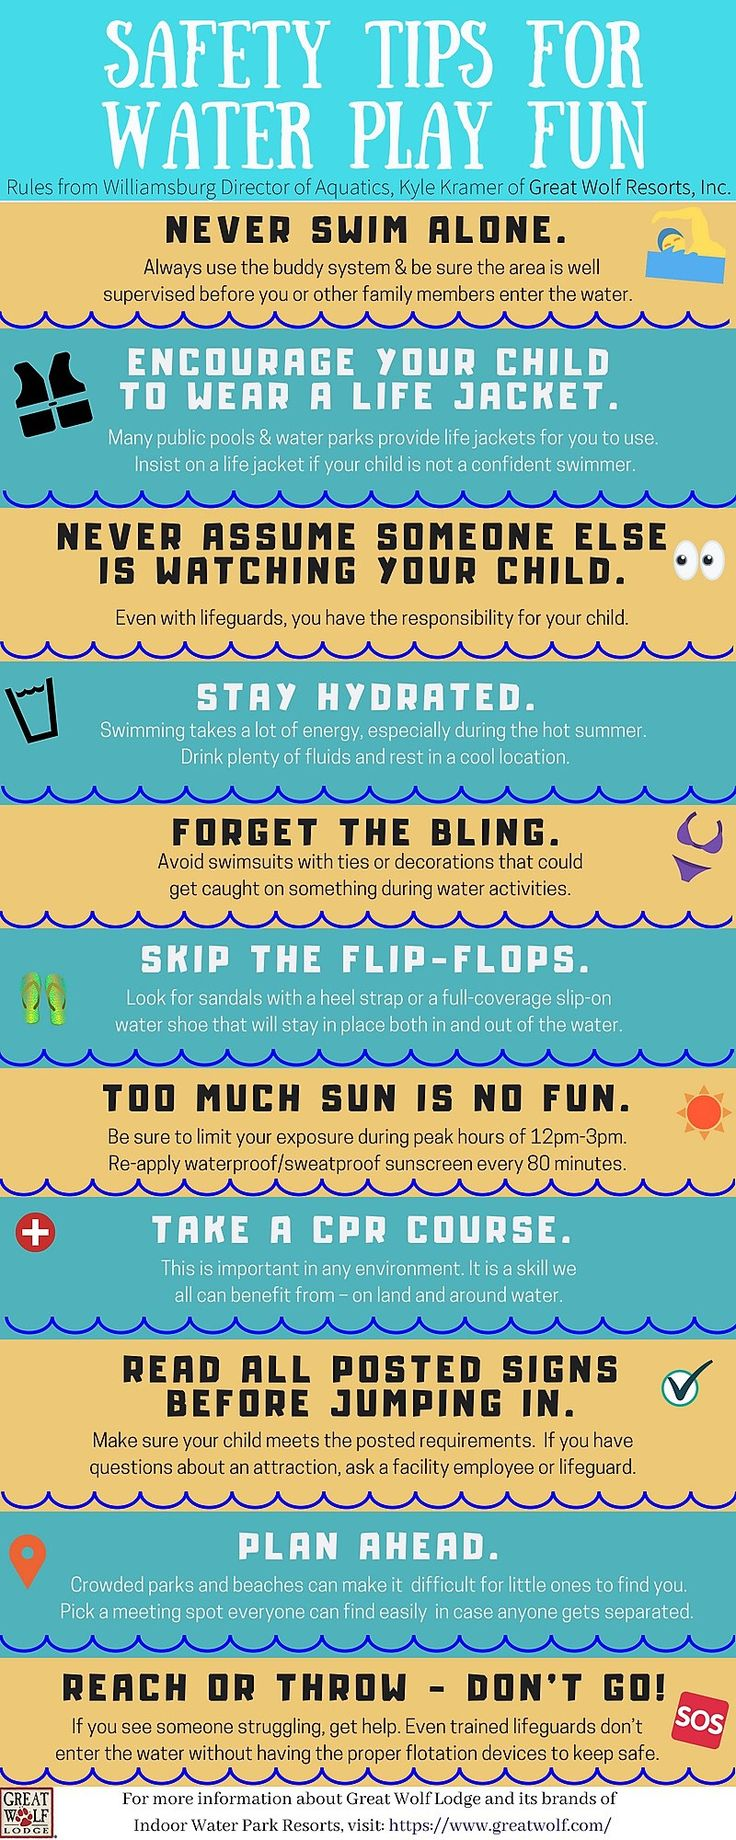 Great Wolf Lodge Has Welcomed Millions Of Families To Its Water Parks Grab A Free Water Safety Printable With 11 Tips You Must Know To Keep Your Family Safe At Water [ 1840 x 736 Pixel ]